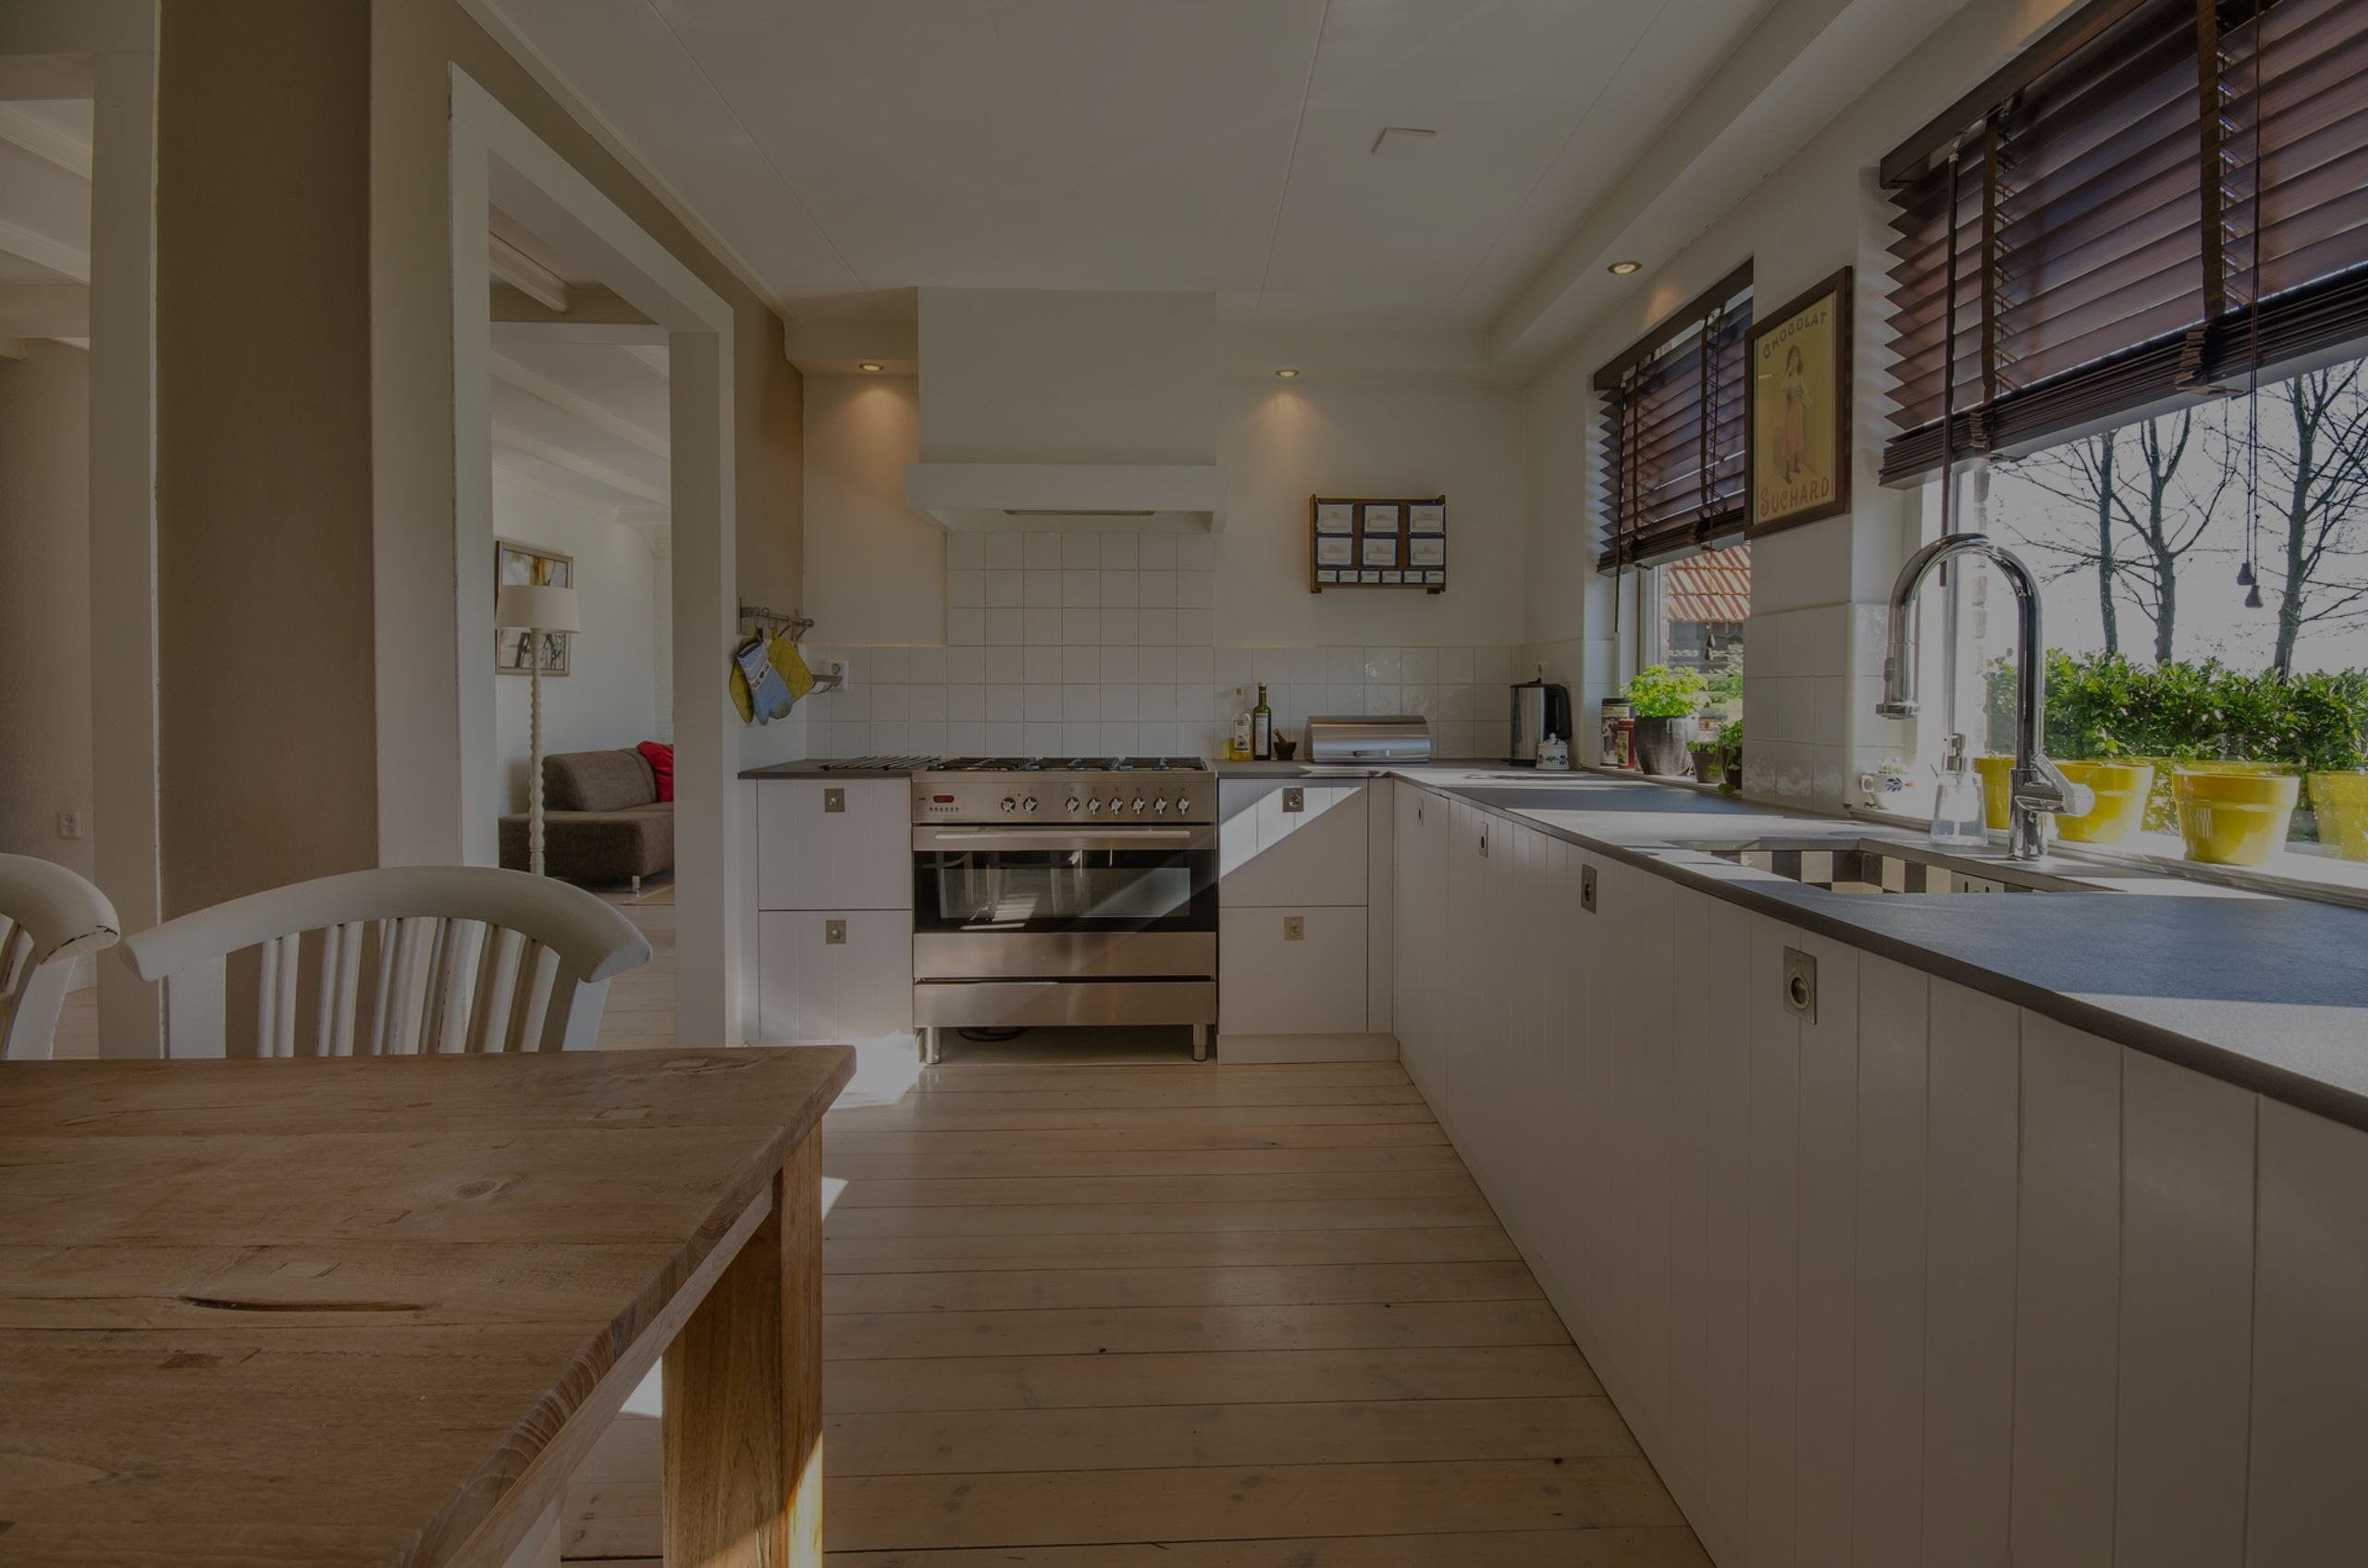 Make The Most Of Your Loudoun County Kitchen Space! 7 Time-tested Organizing Tips